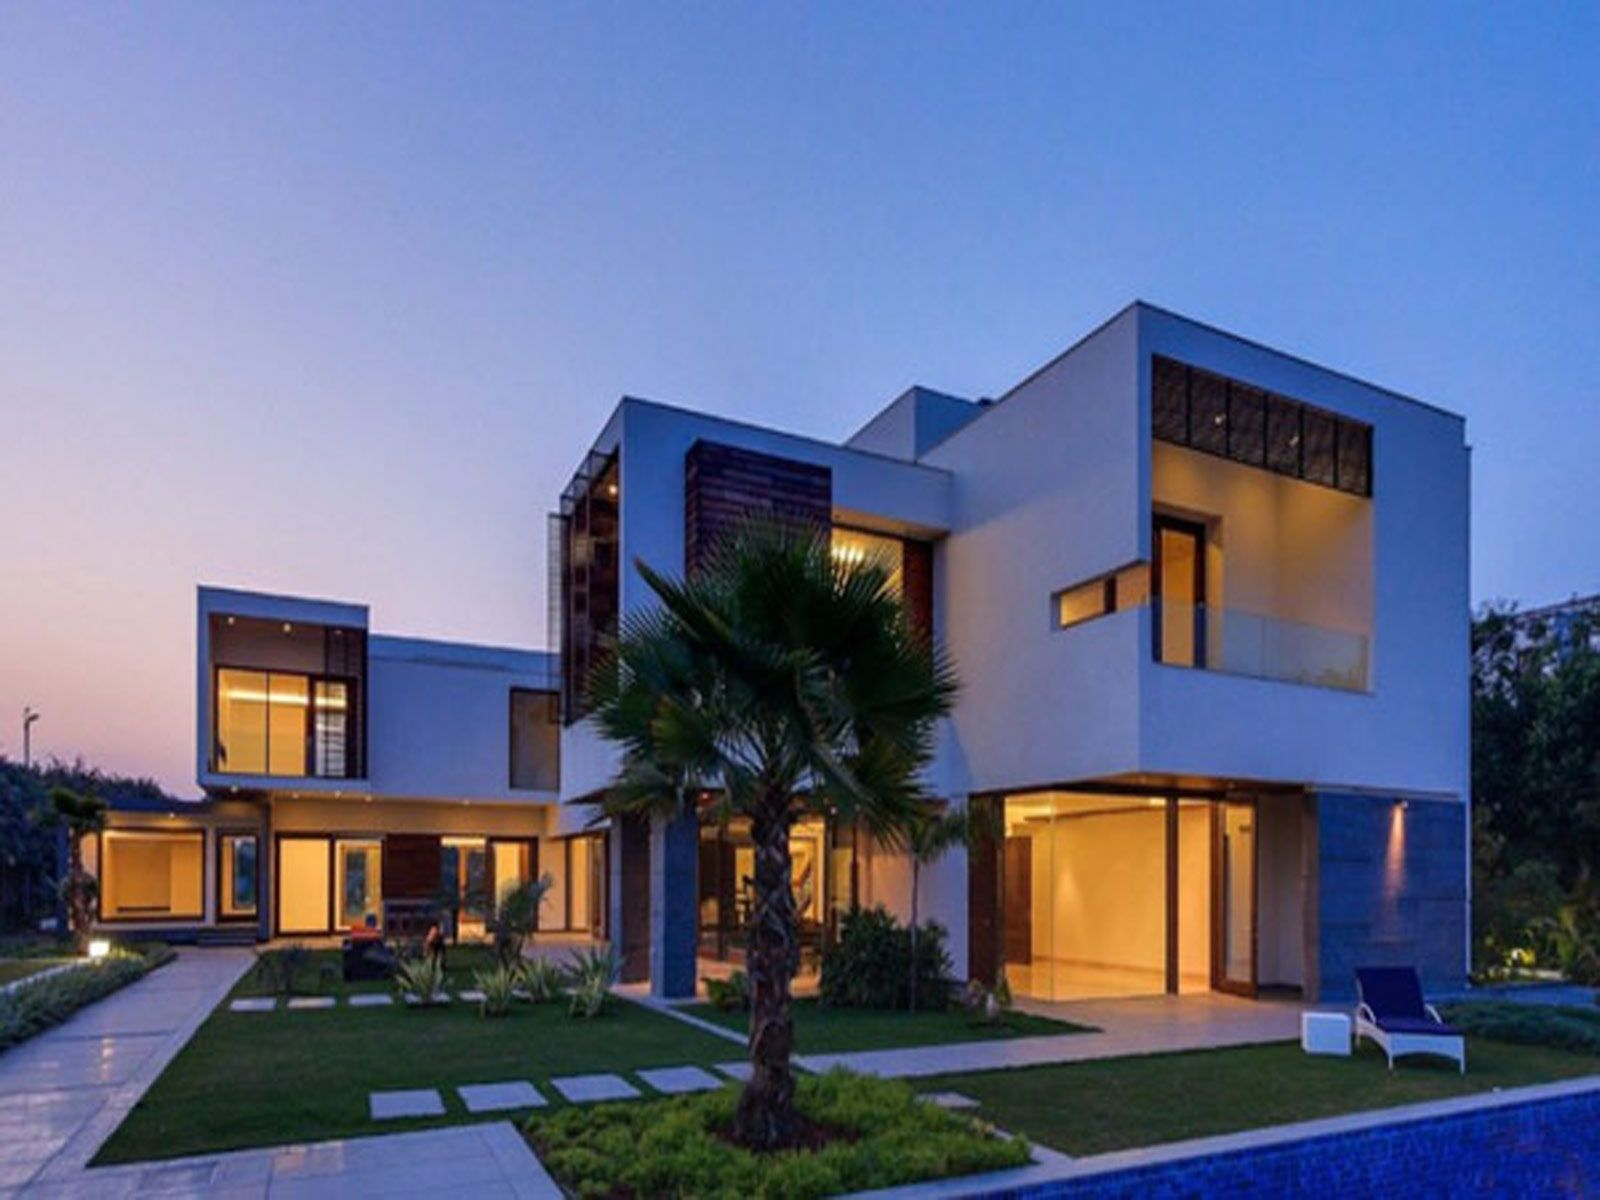 Contemporary Luxury Home And Architecture In New Design Mansions Estates Houses From